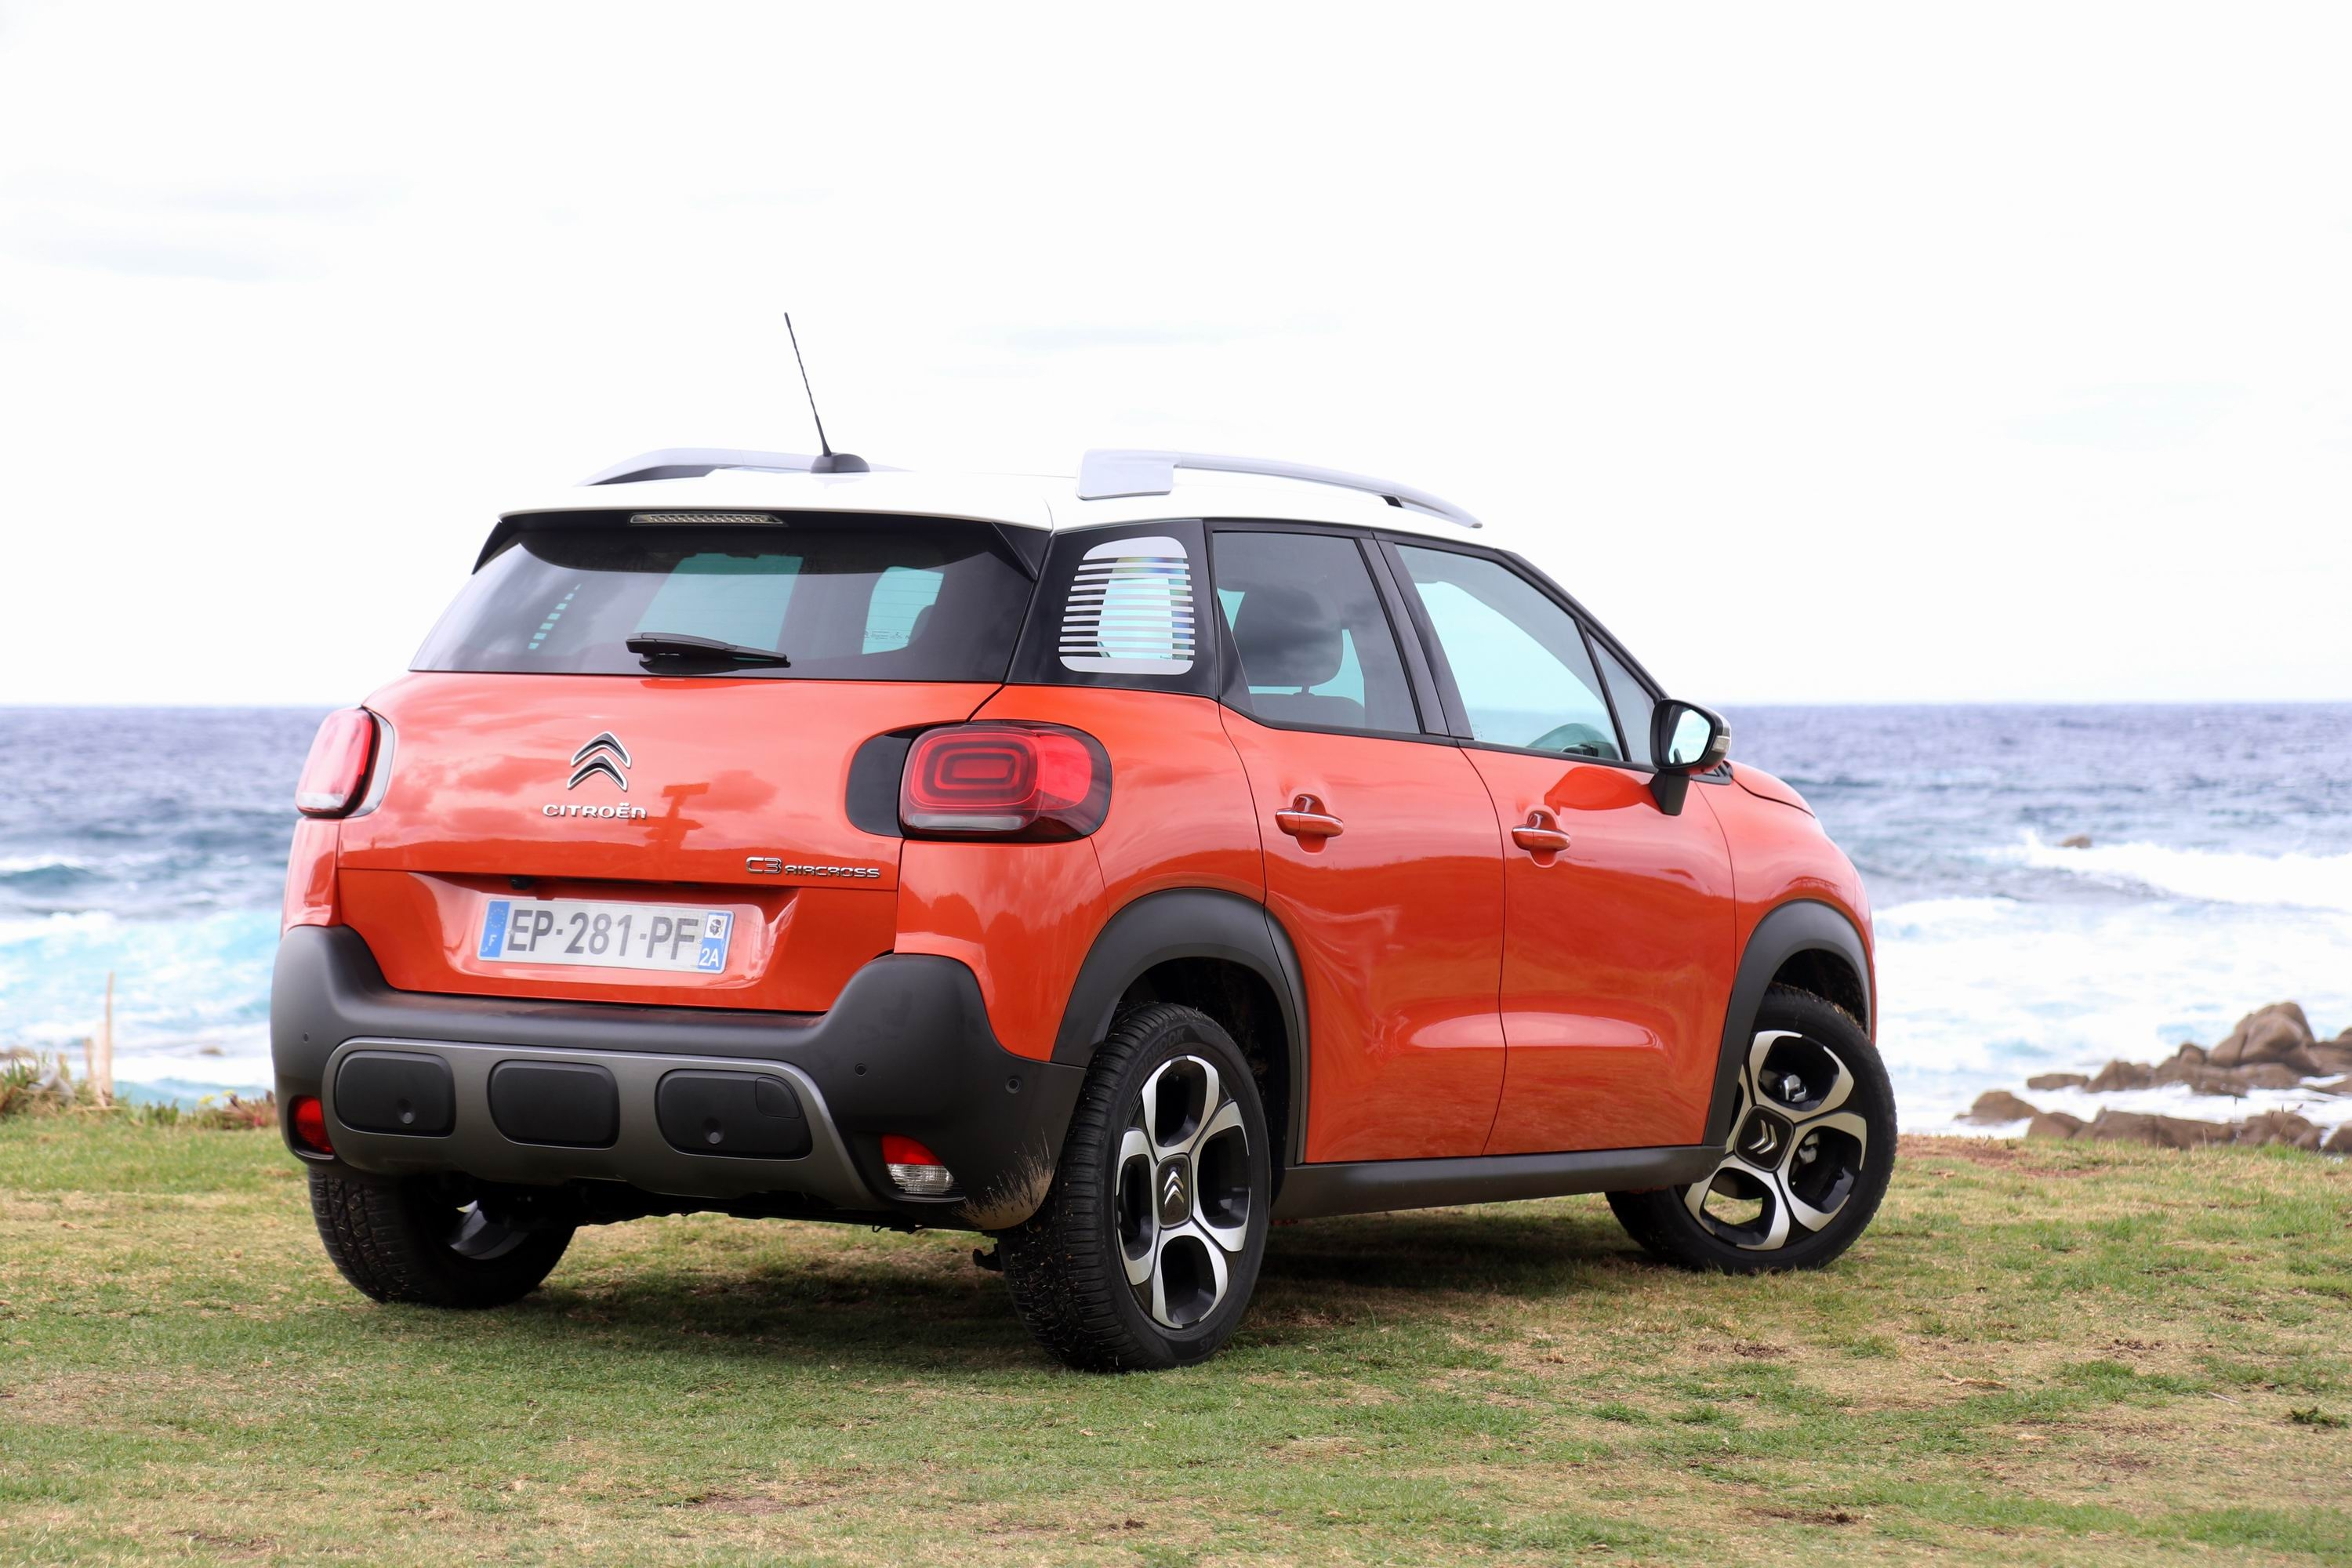 S0-comparatif-video-citroen-c3-aircross-vs-renault-captur-duel-franco-francais-530600